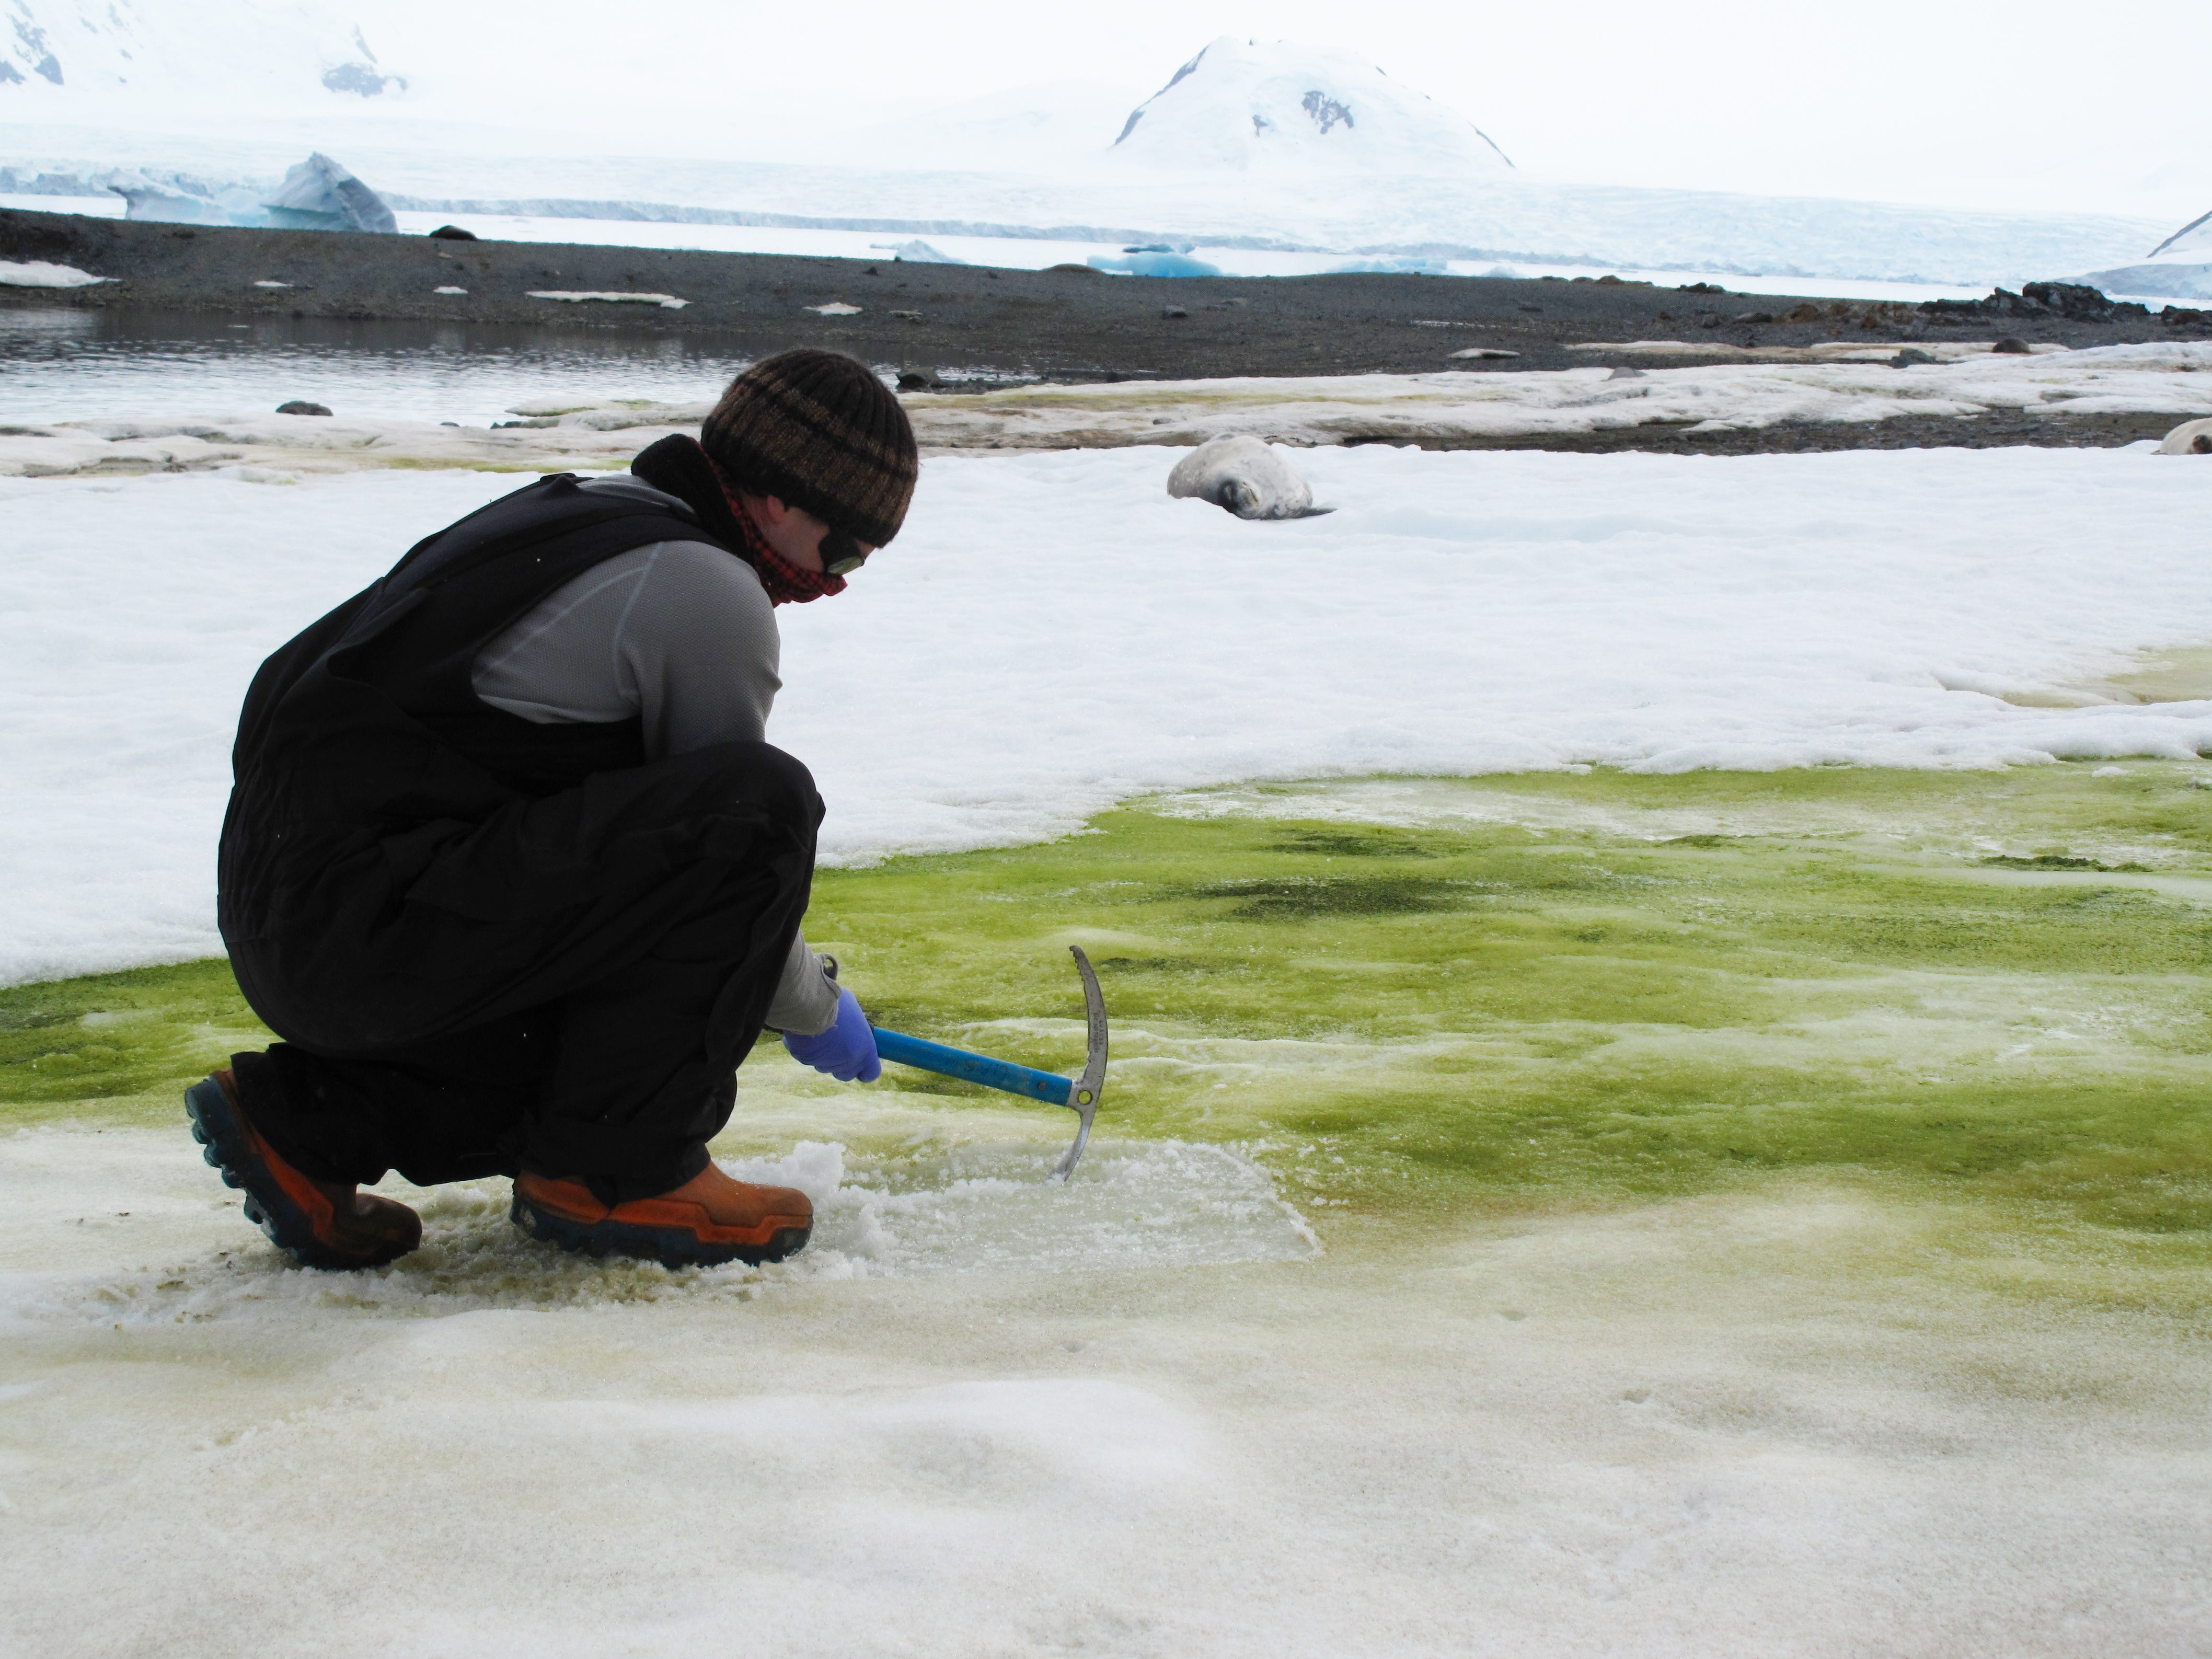 Climate change is turning the snow in Antarctica bright green. Scientists are able to see it from space.